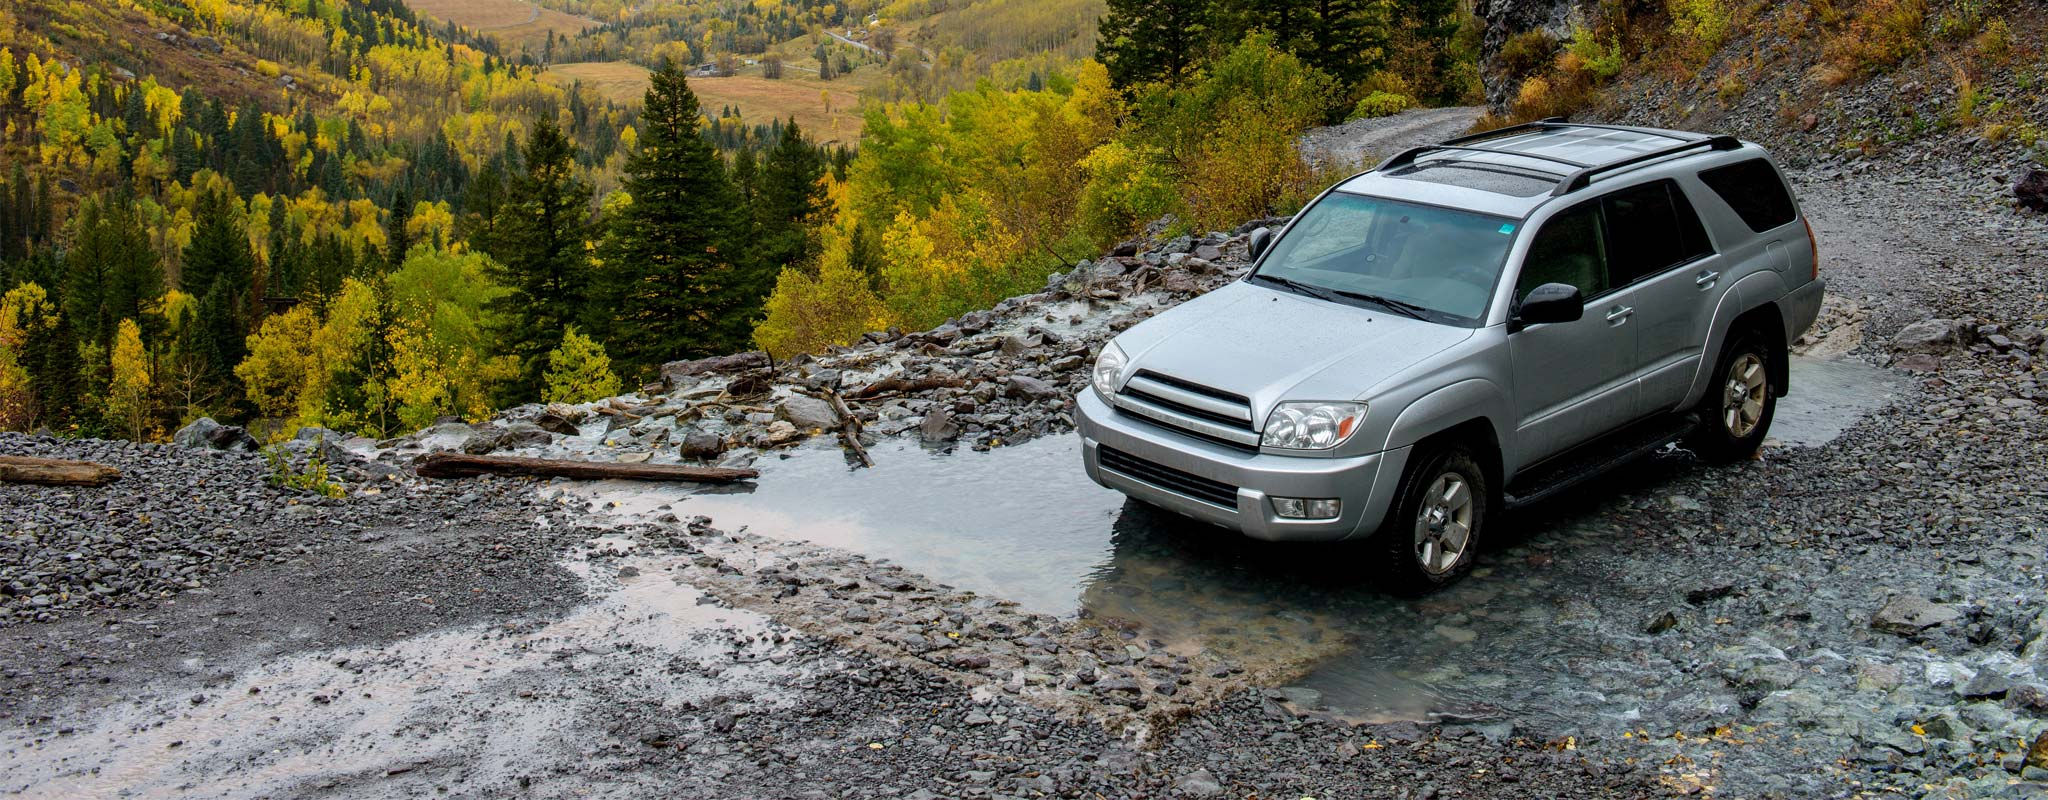 SUV driving on wet gravel road.